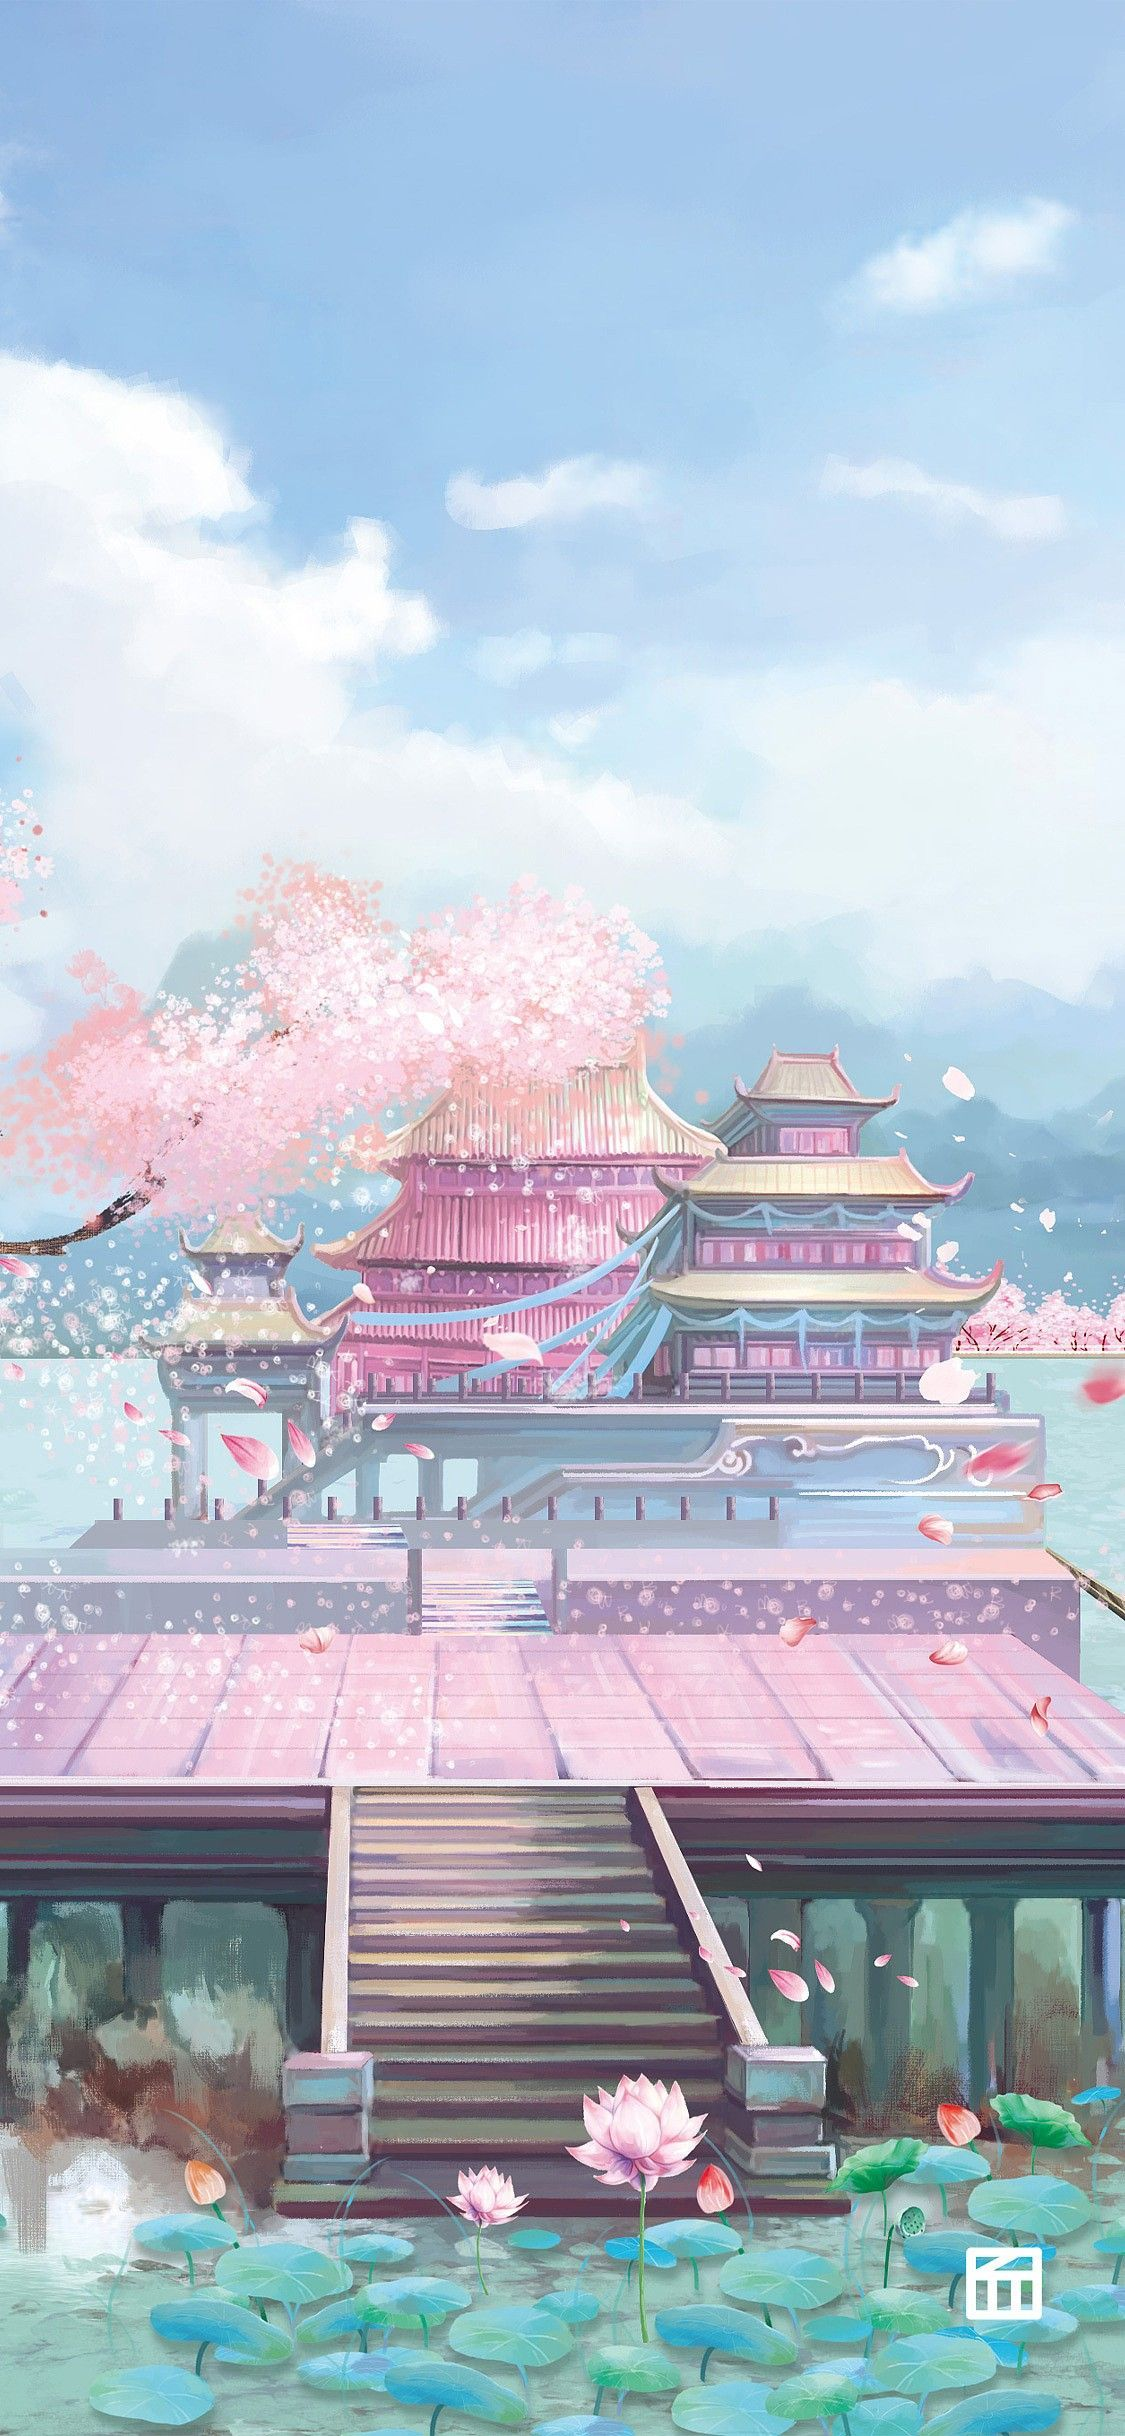 Pin By Aria On Anime Academy In 2020 Anime Scenery Anime Places Asian Landscape